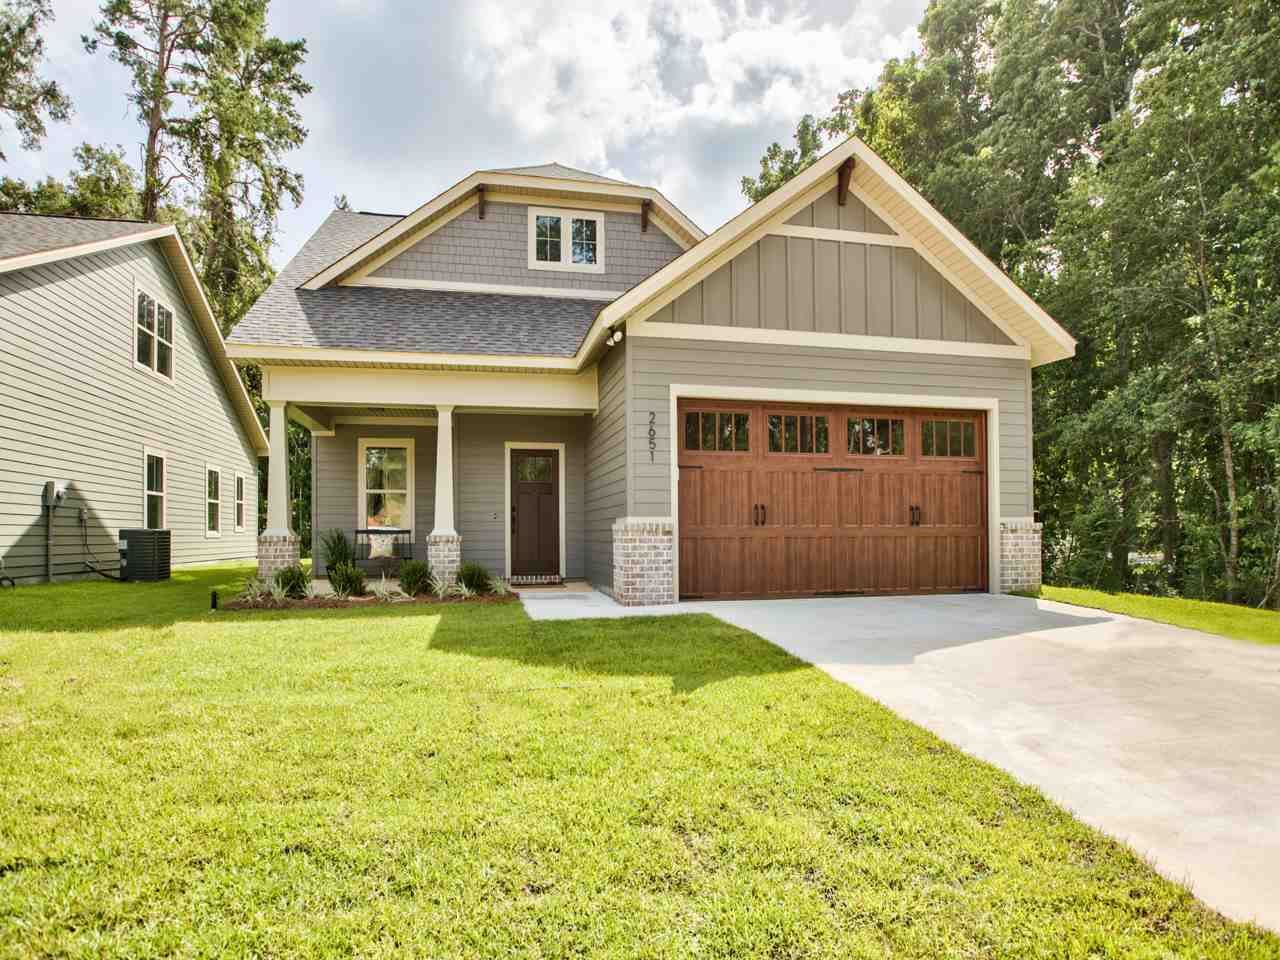 Photo for 2679 Bending Way, TALLAHASSEE, FL 32308 (MLS # 314445)